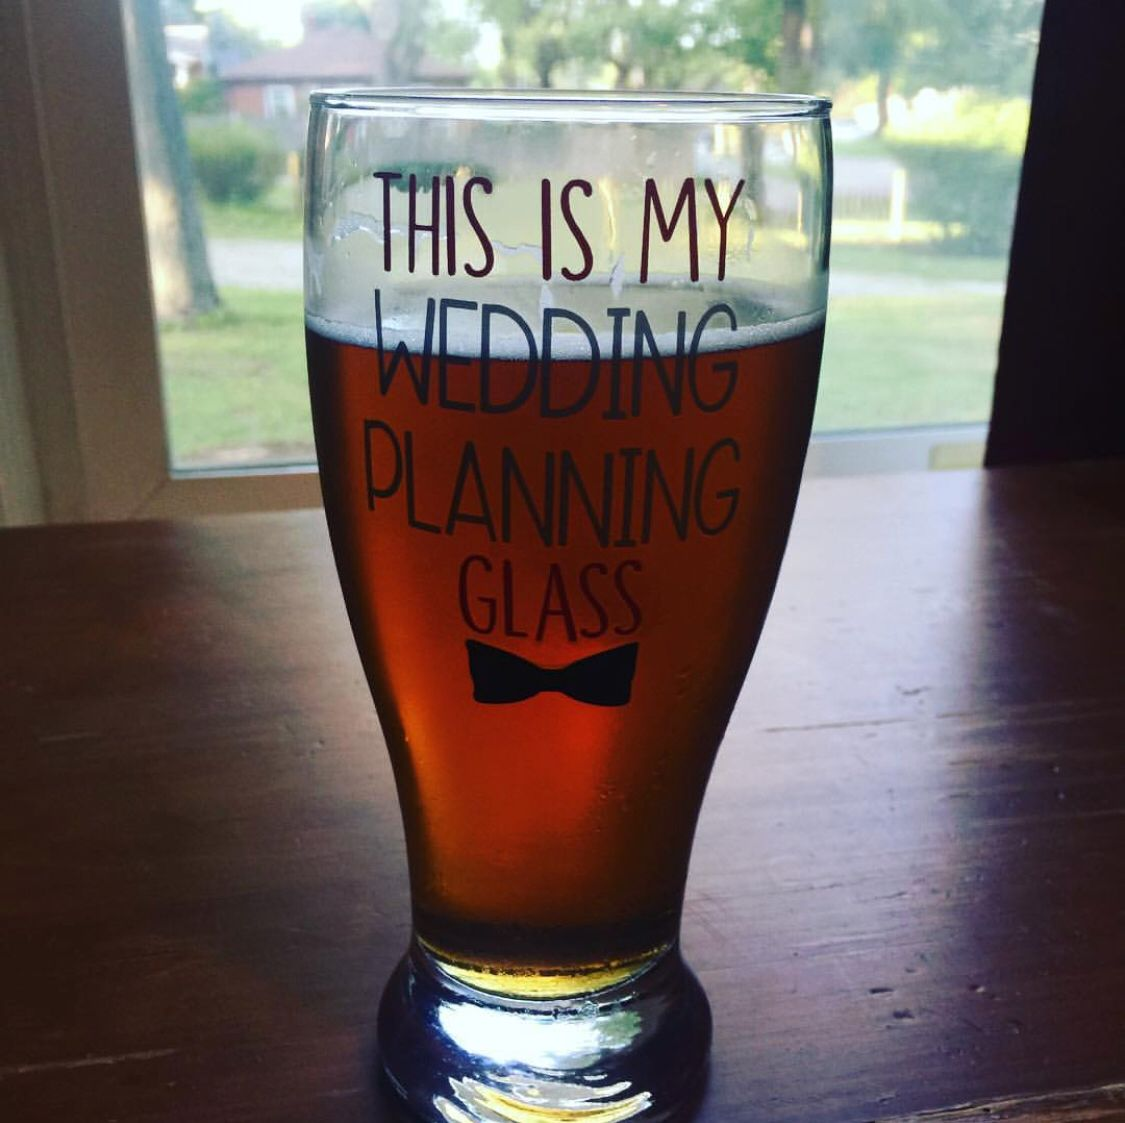 Gifts For The Groom Wedding Glass Beer Glass Etsy Gifts For Fiance Wedding Planning Glass Birthday Presents For Friends